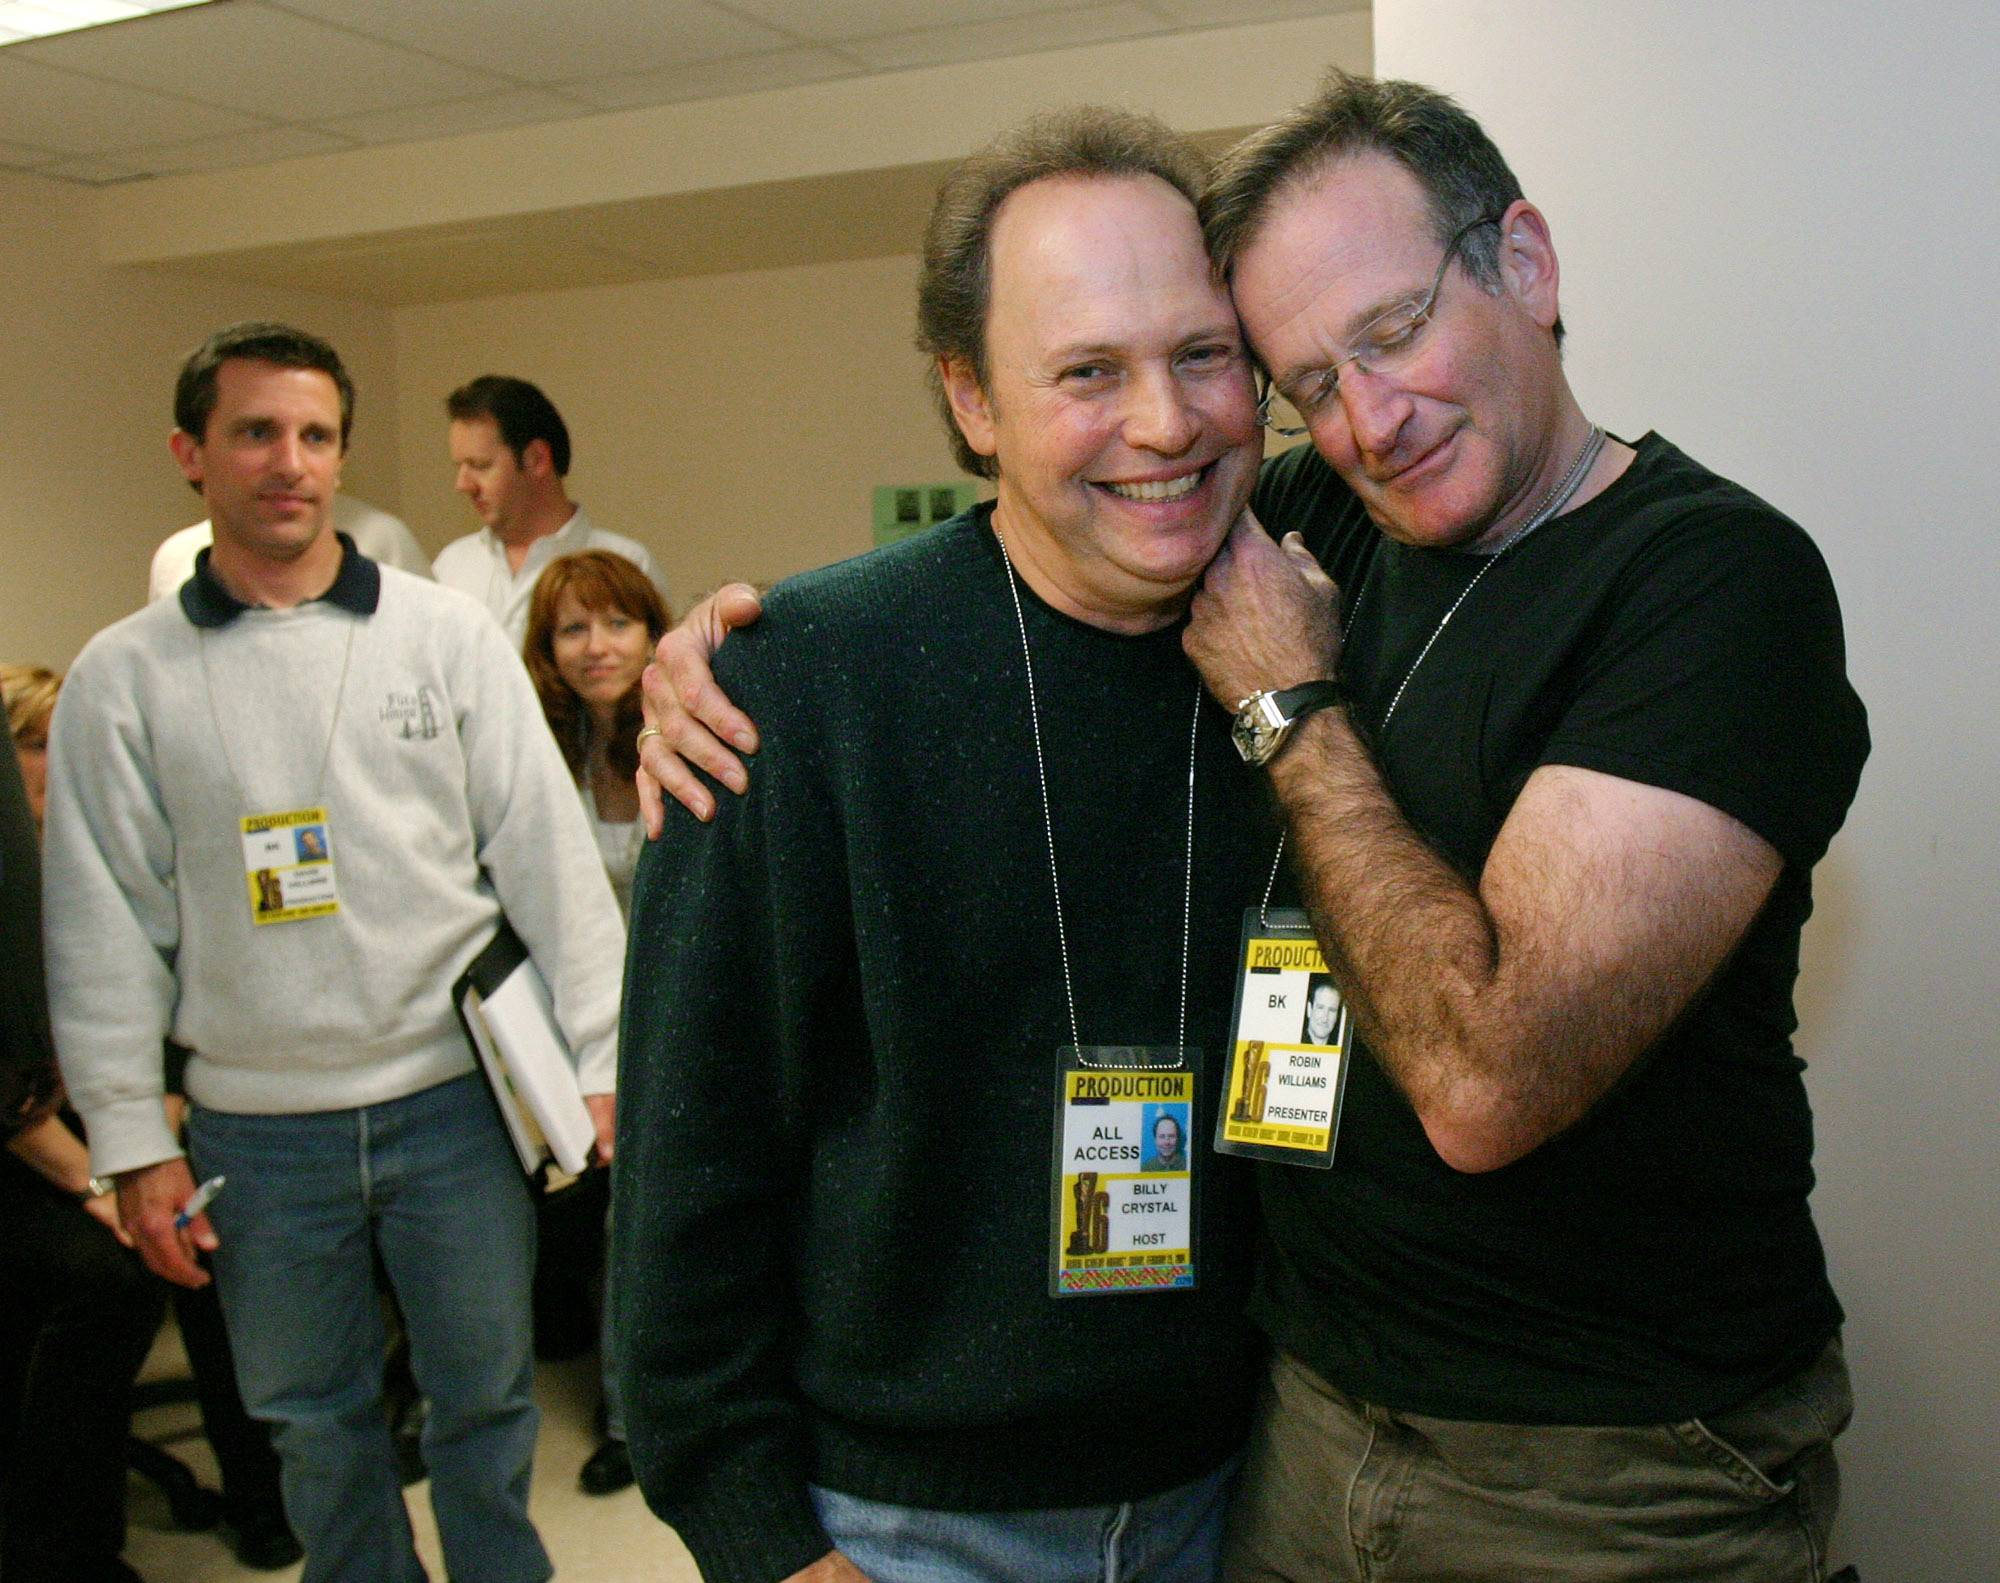 Oscar host Billy Crystal, left, and presenter Robin Williams joked around after a writers' meeting for the 76th annual Academy Awards in 2004. Crystal honored Williams as part of the traditional In Memoriam segment at the Emmy Awards Monday.